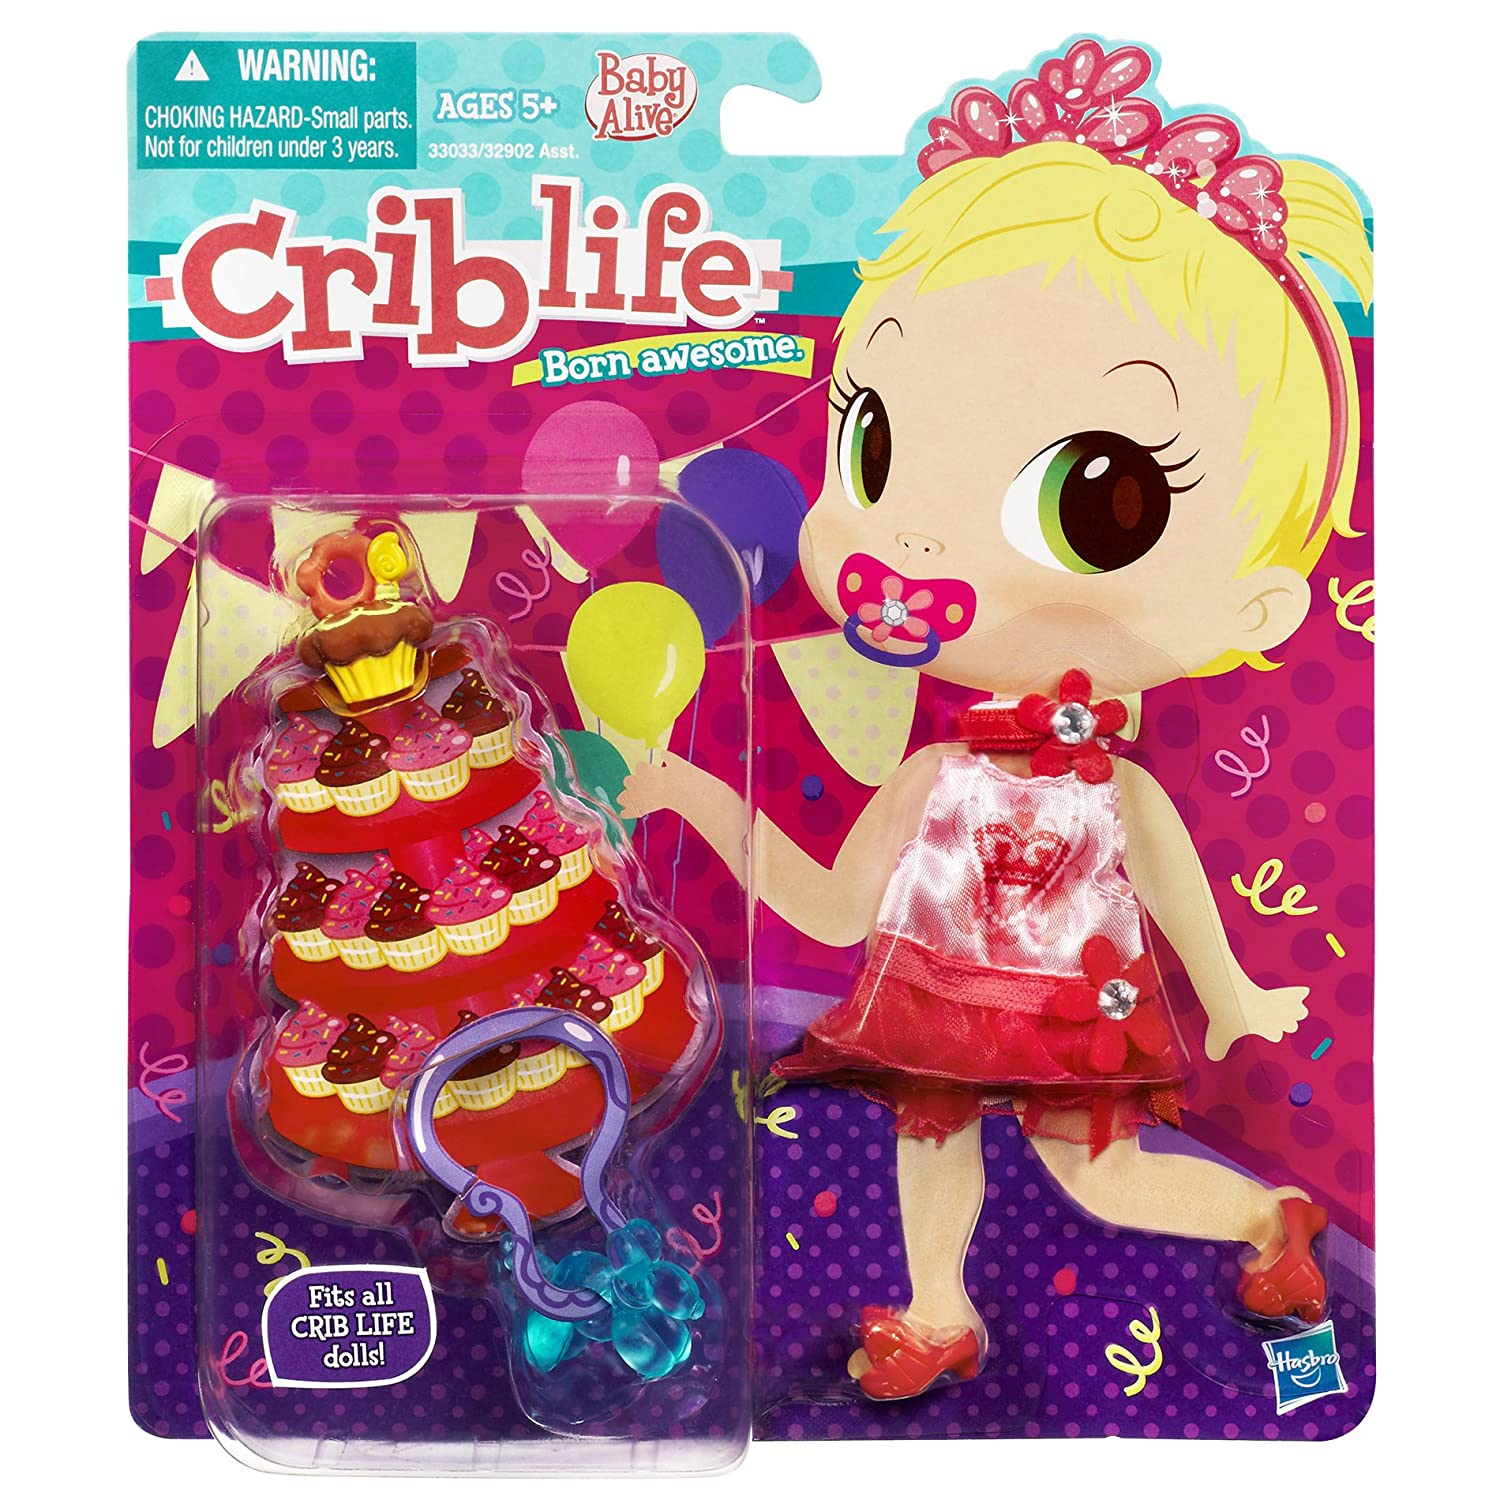 Uncategorized Criblife amazon com baby alive crib life outfit birthday party fashion toys games